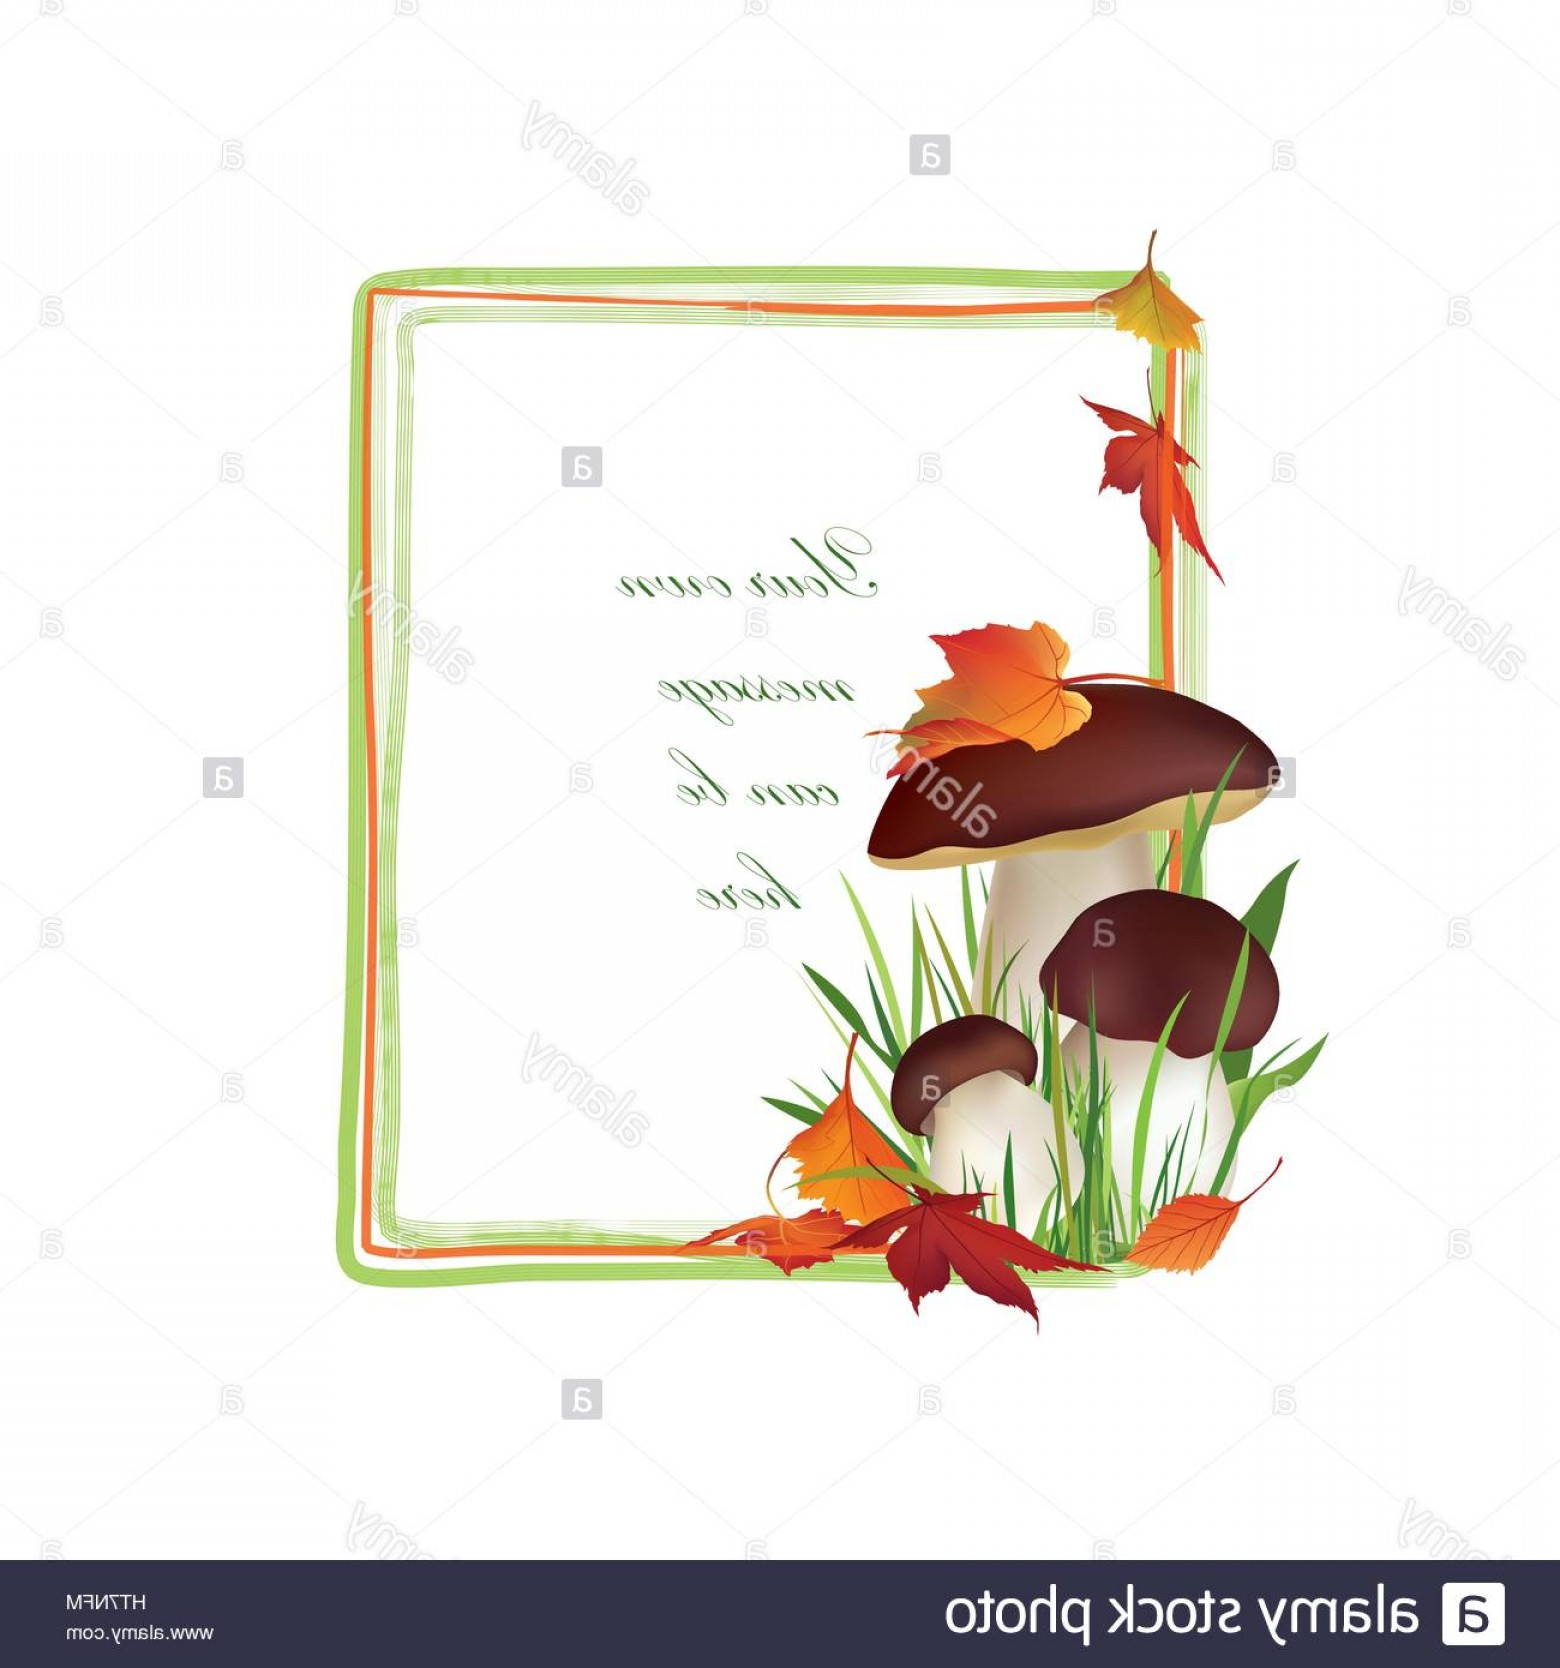 Chanterelle Mushrooms Vector: Stock Photo Autumn Frame Mushrooms Chanterelle Mushroom Vector Background With